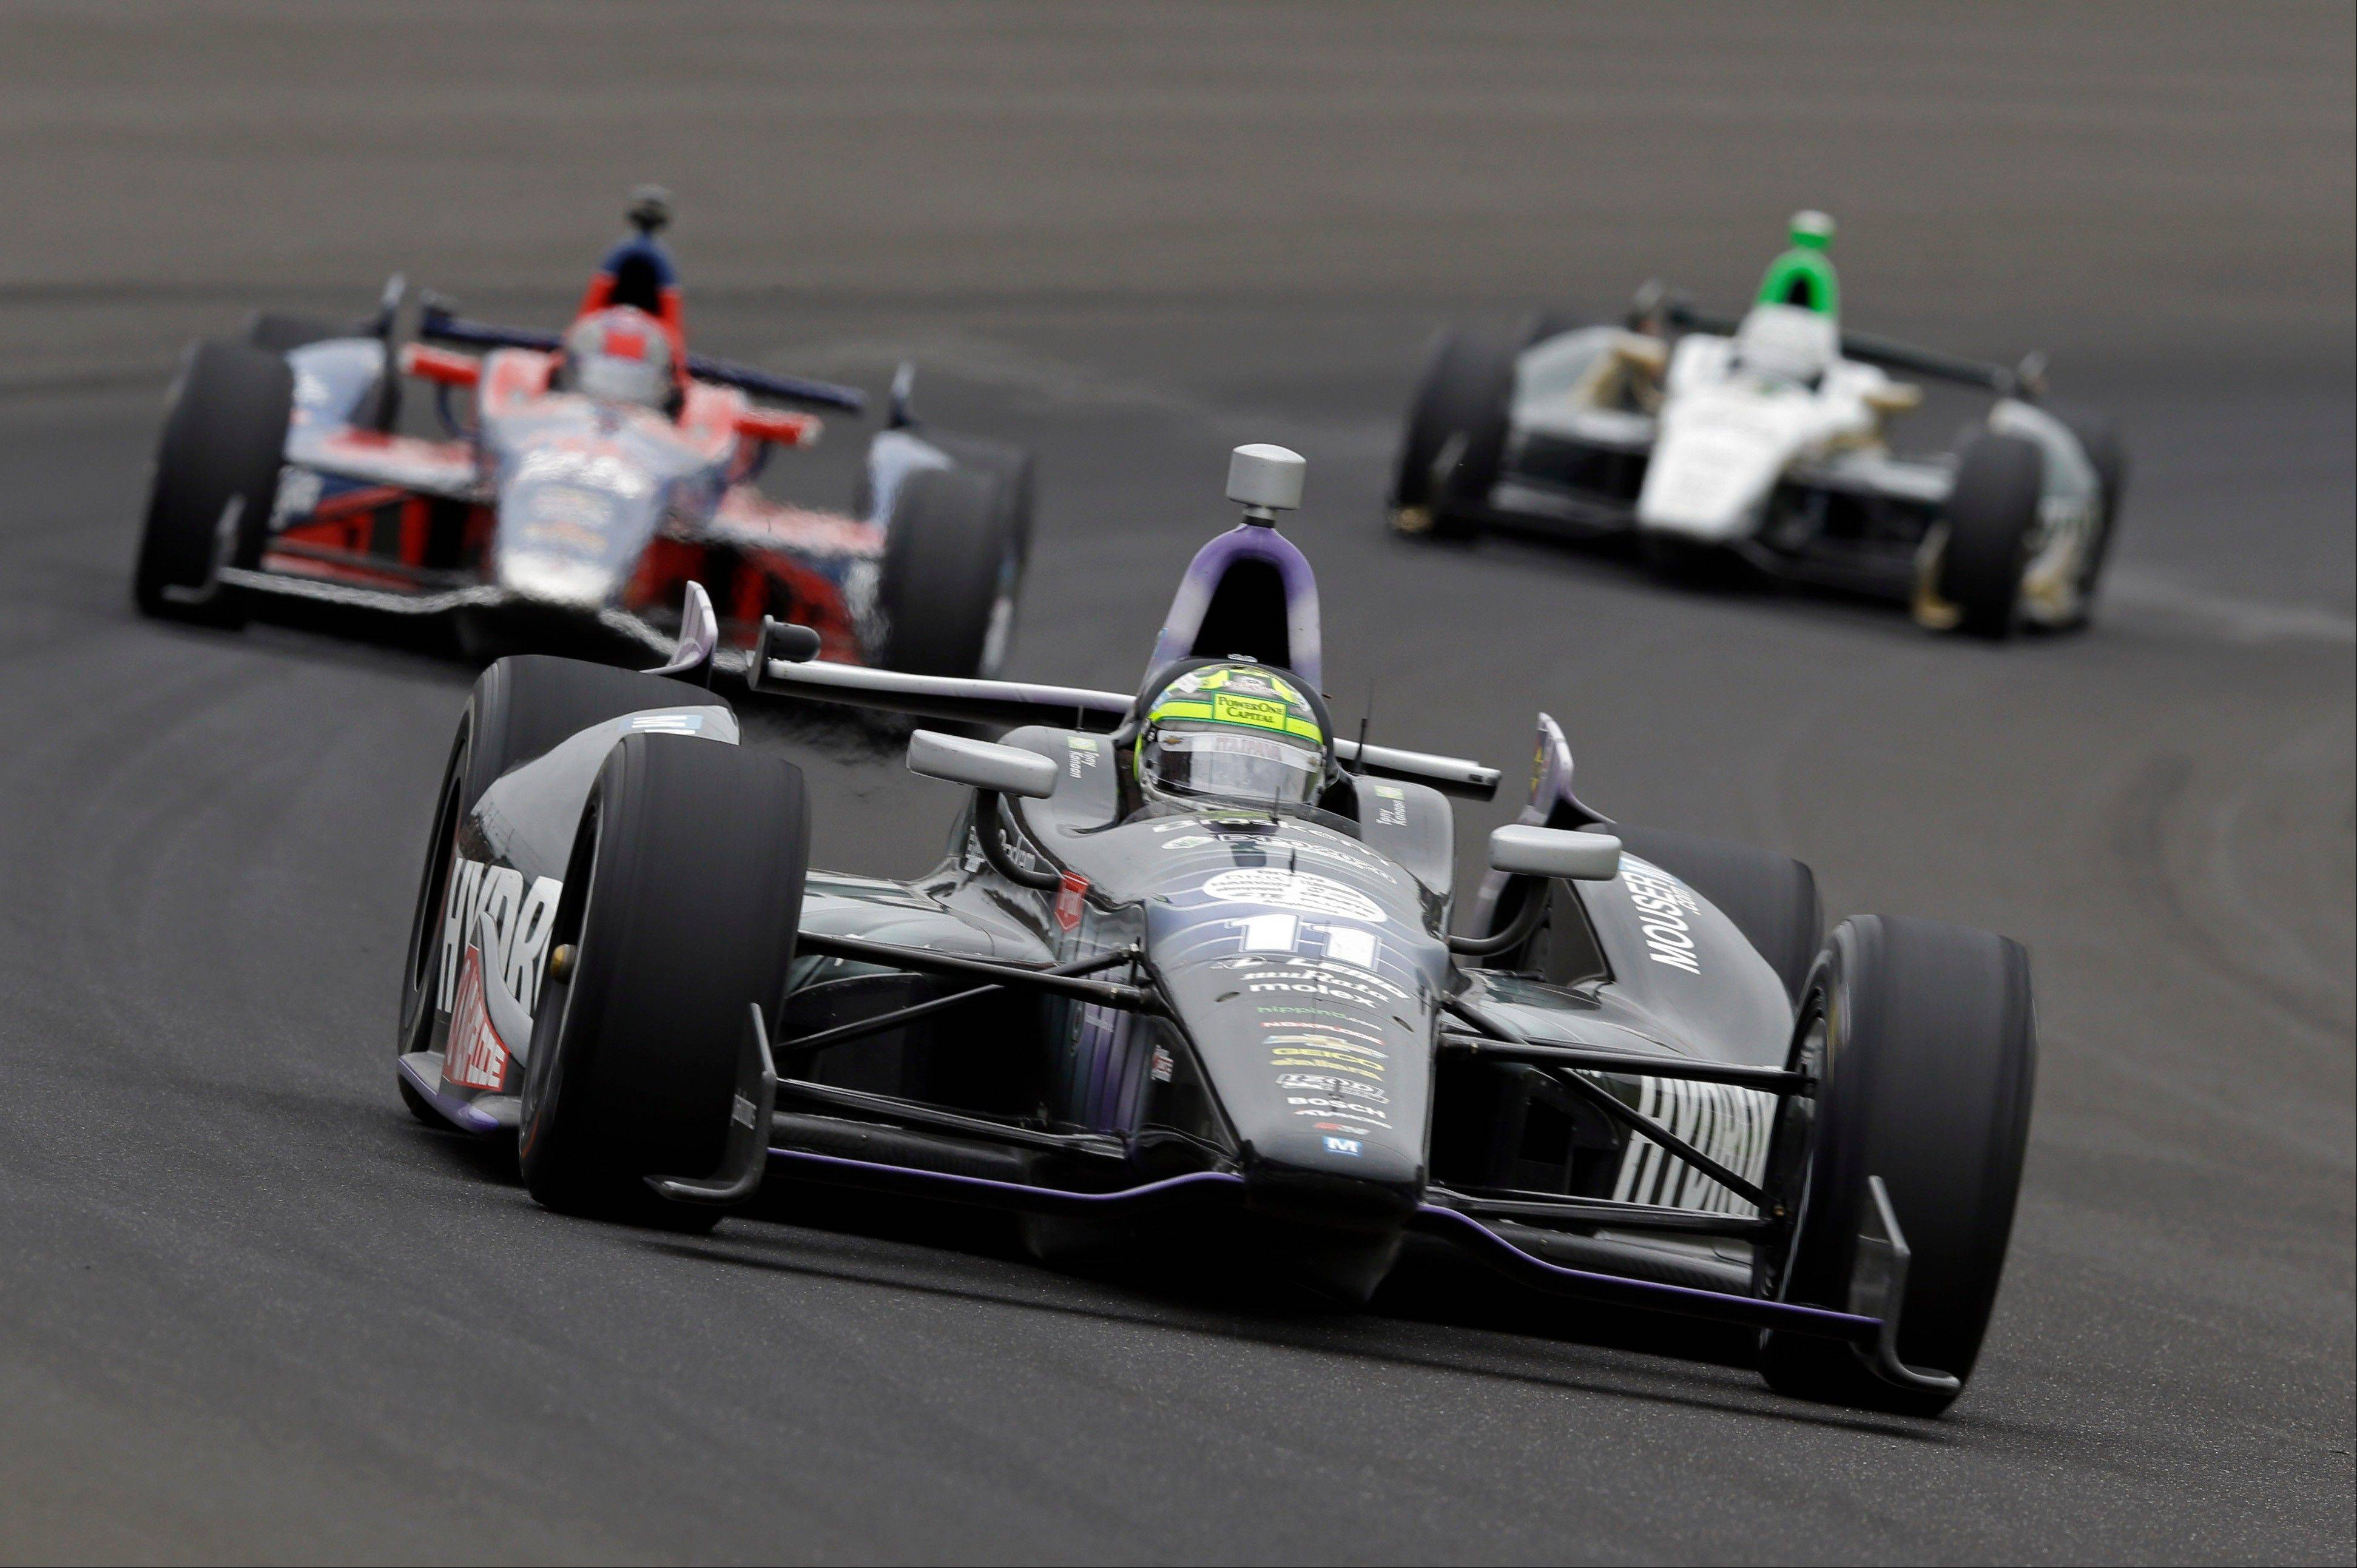 Tony Kanaan, of Brazil, drives through the first turn during the Indianapolis 500 auto race at the Indianapolis Motor Speedway in Indianapolis Sunday, May 26, 2013.